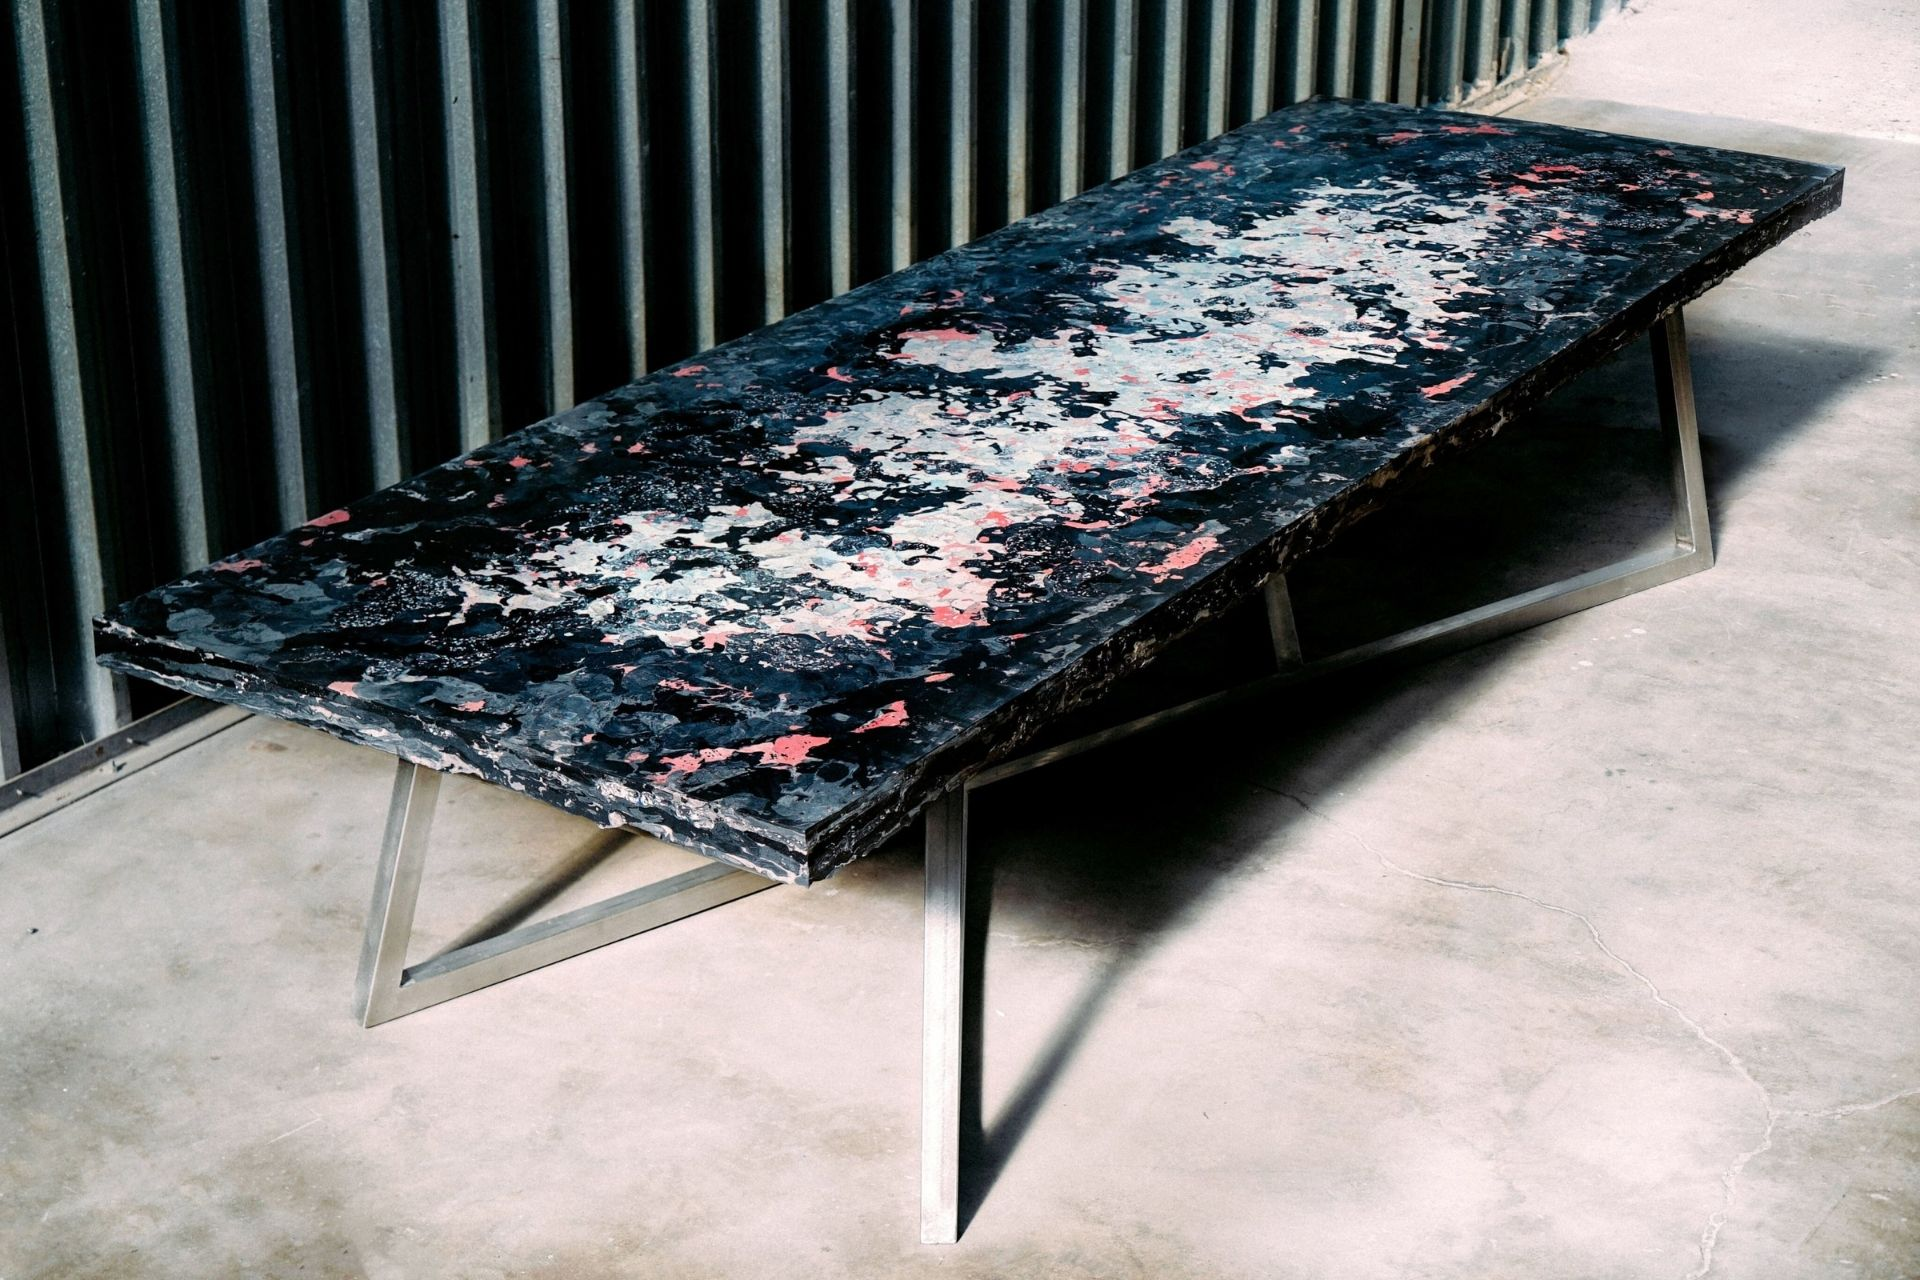 Plastic recycled conference table for Jaden Smith